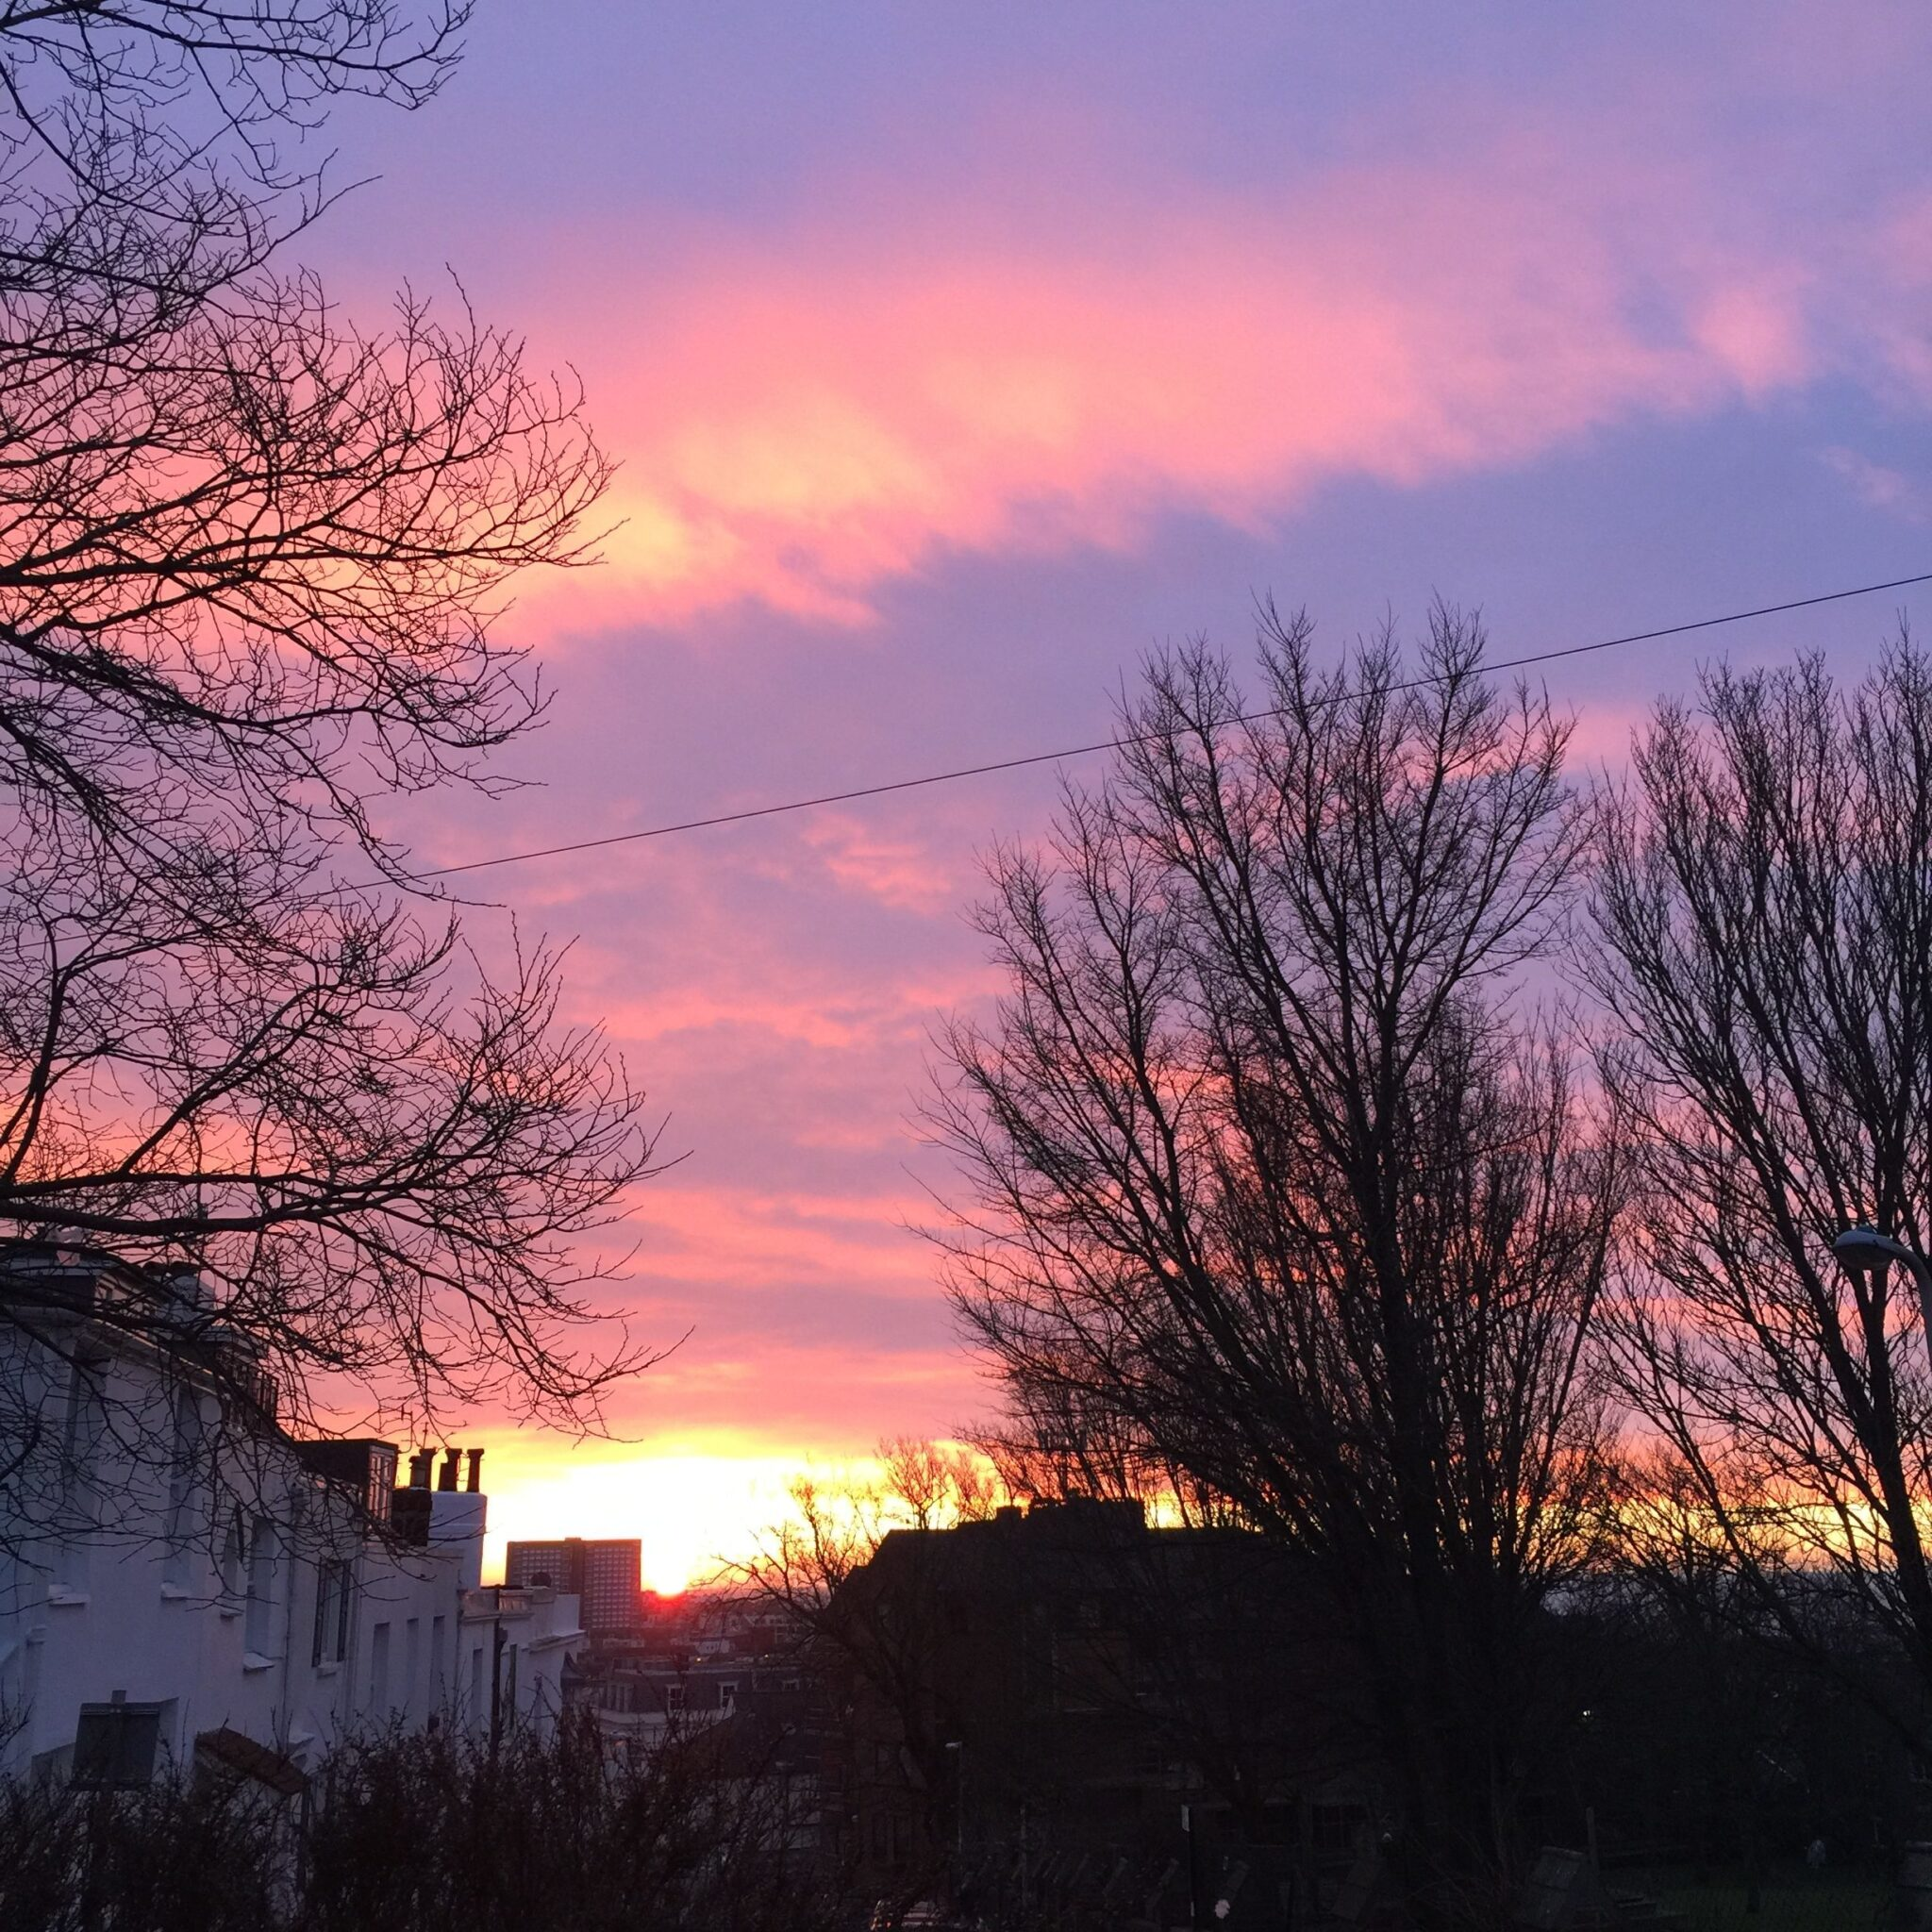 Good morning Brighton! A glorious pink sky. Captured just before 7am. Photograph by Michelle Ogundehin